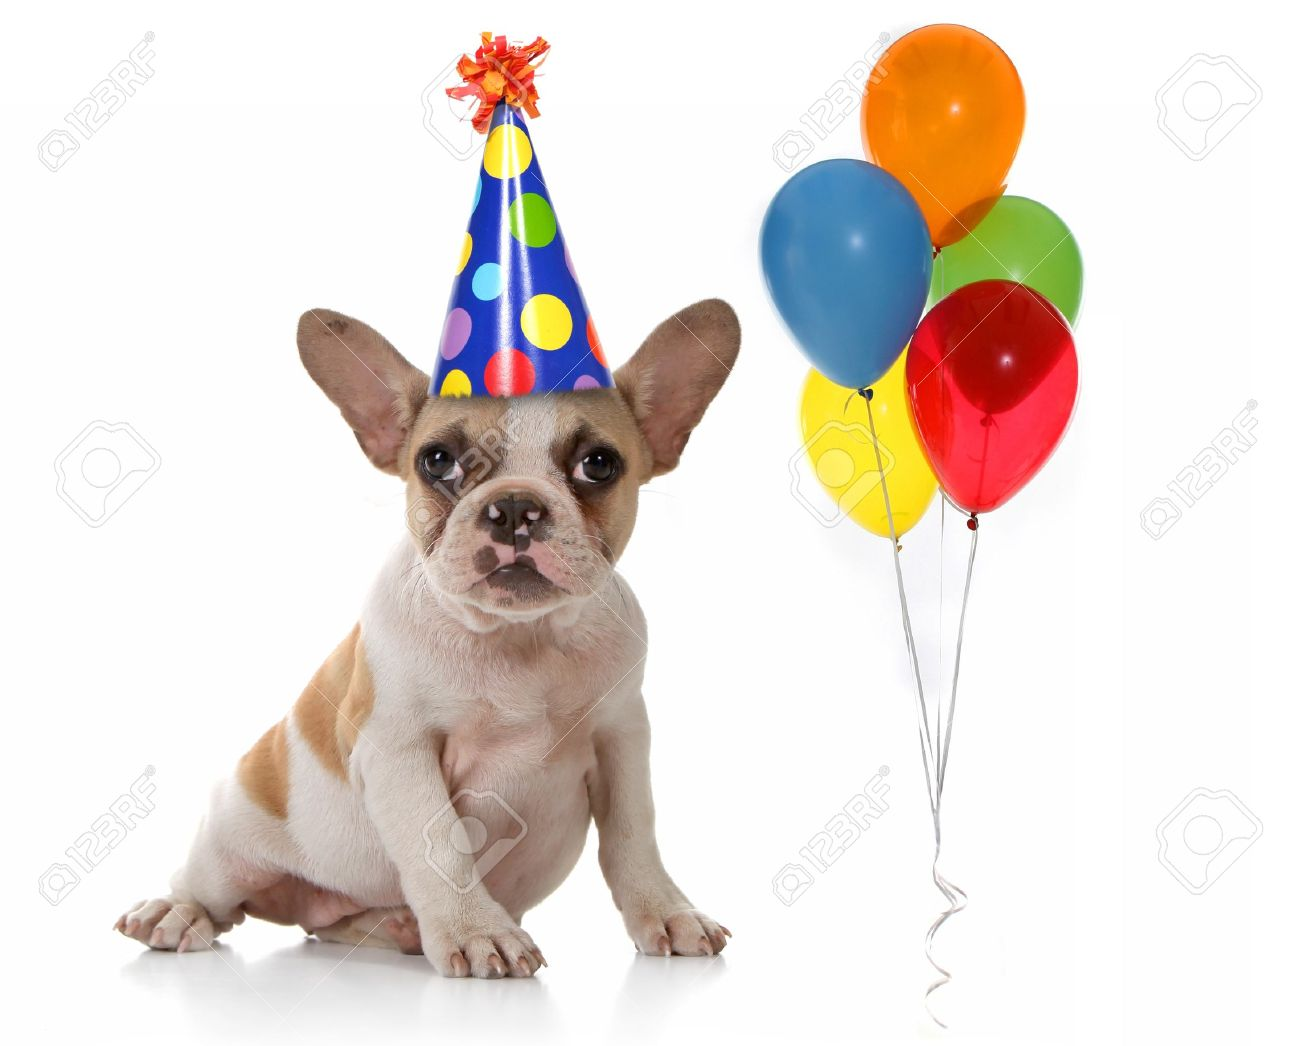 Sitting Puppy Dog With Birthday Party Hat And Balloons Studio